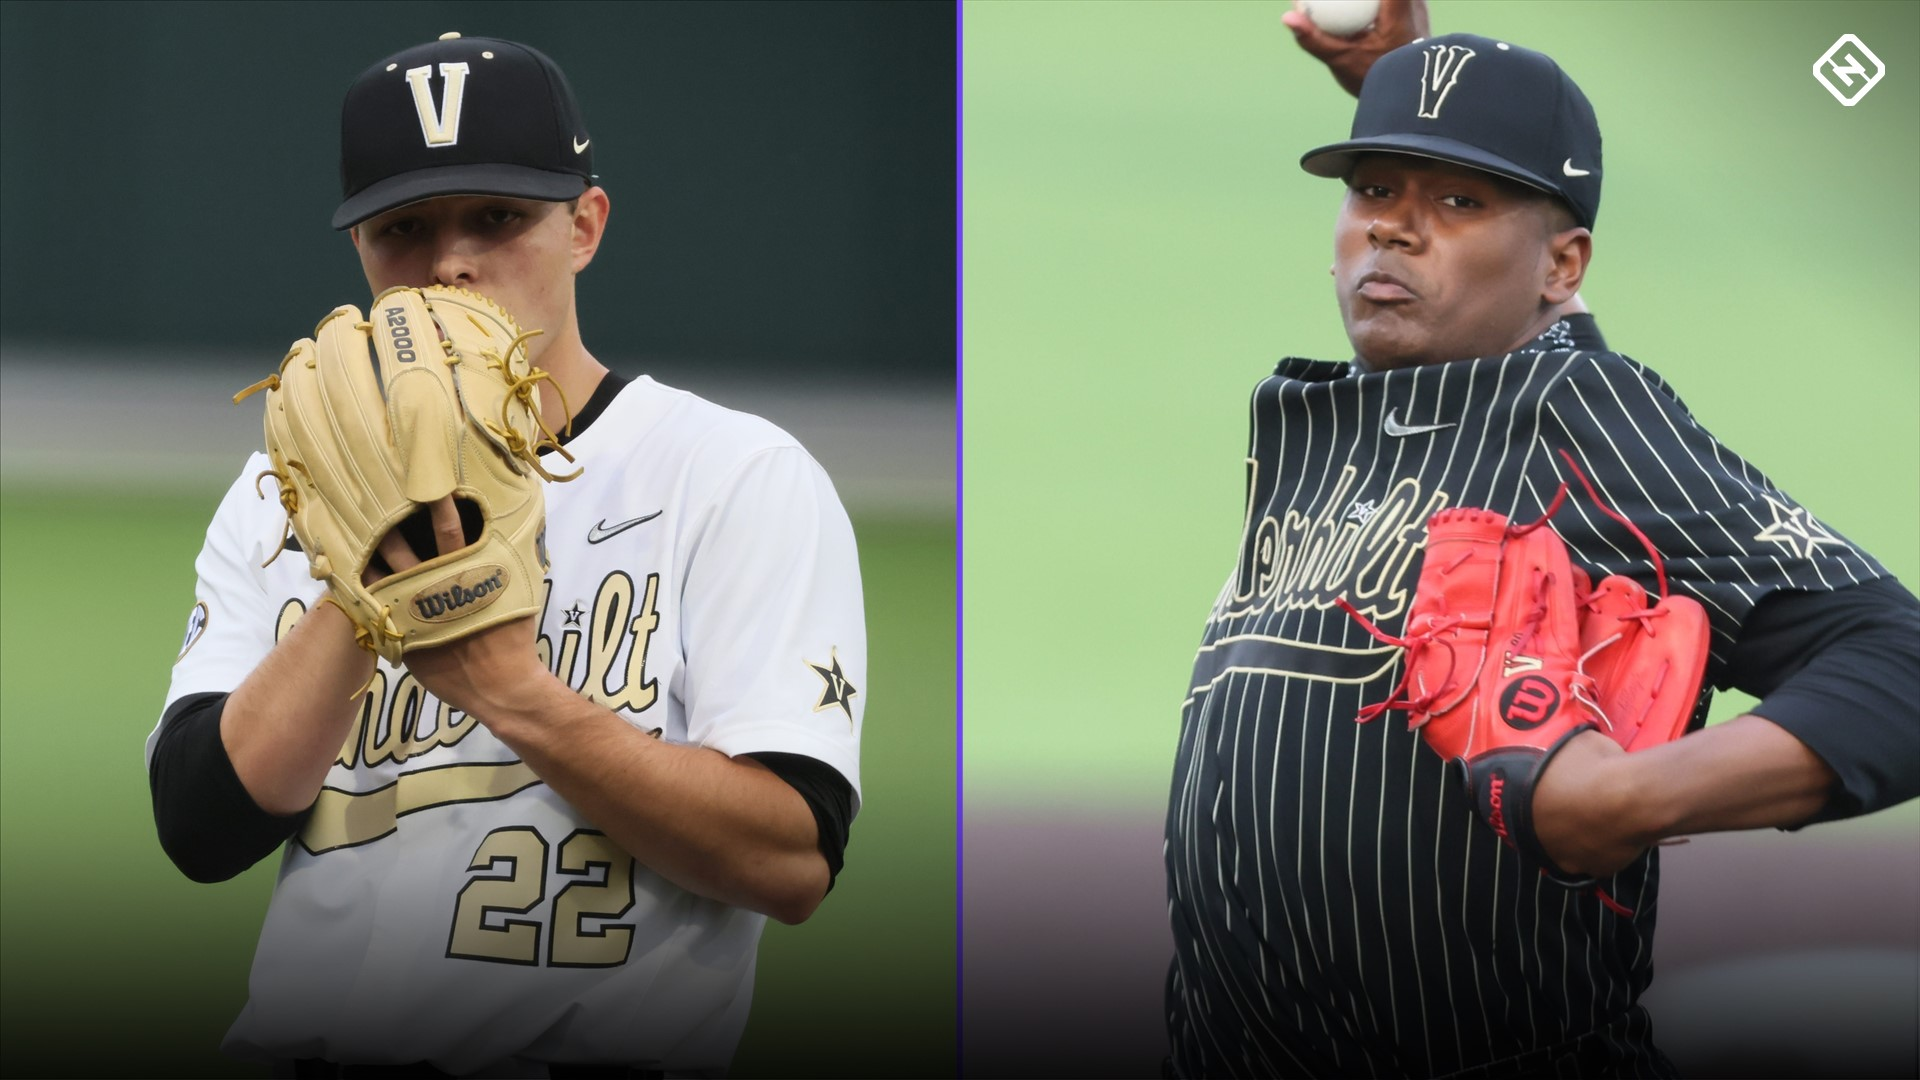 Jack Leiter, Kumar Rocker is the leader in watching the MLB draft at the 2021 College World Series